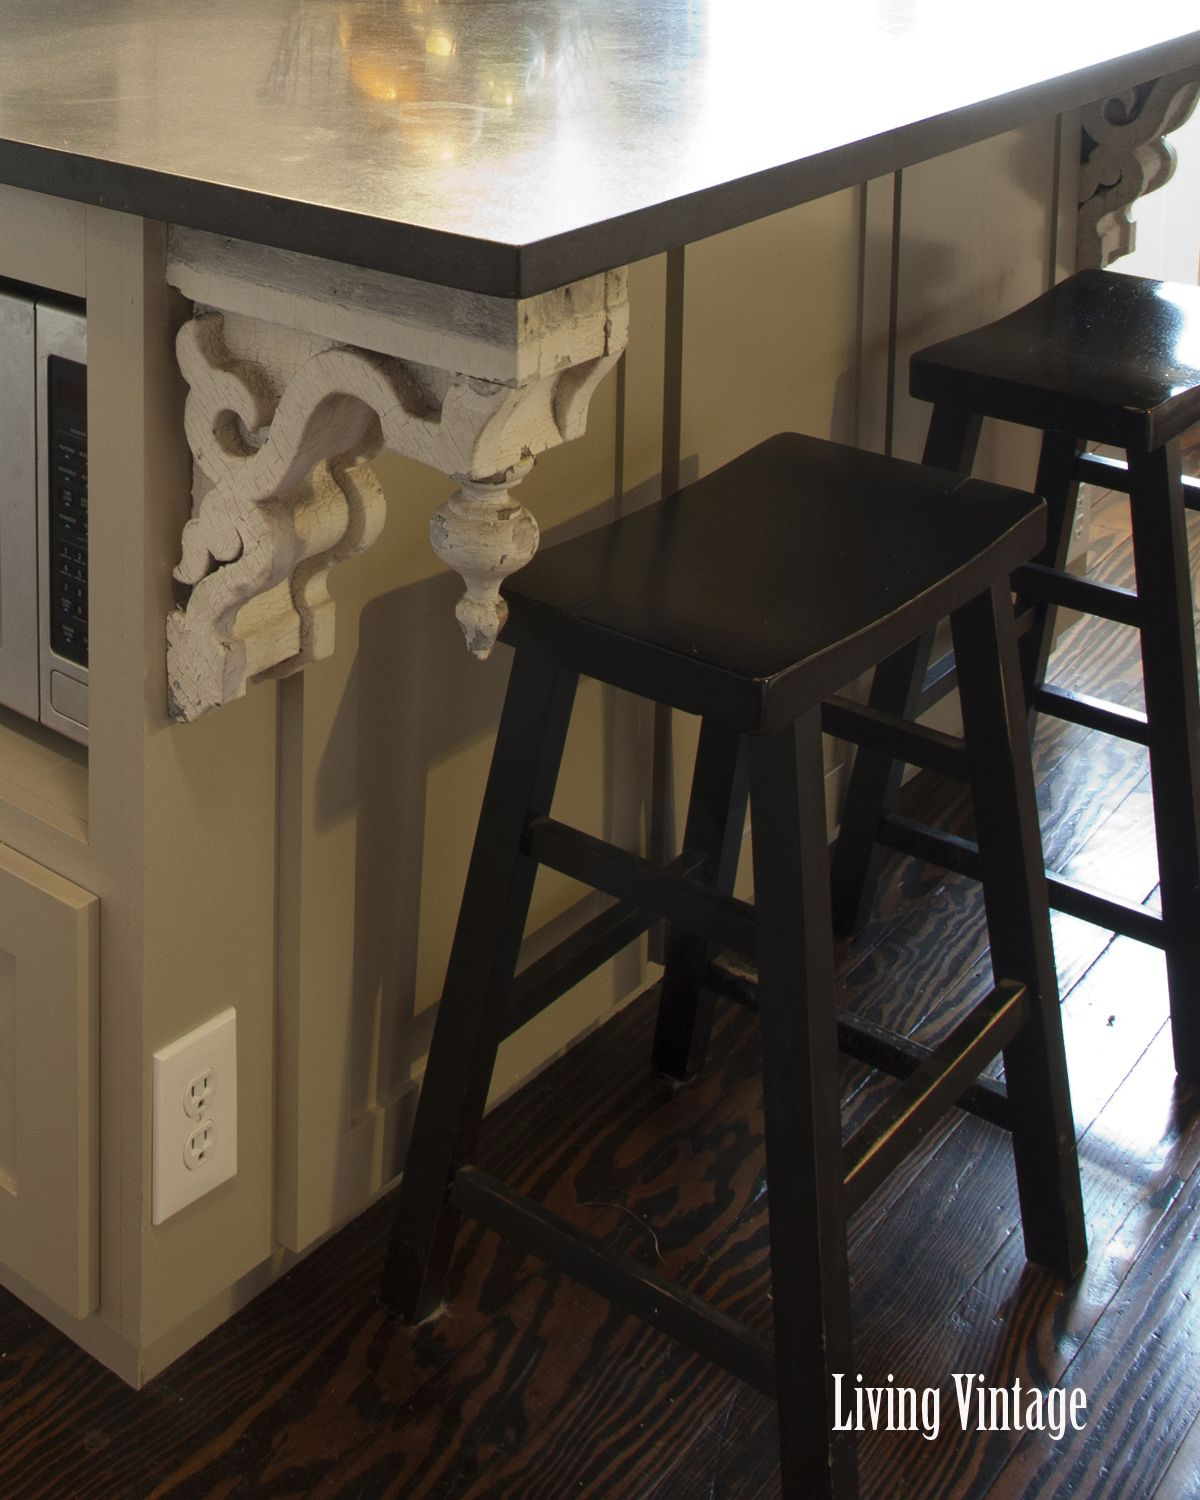 New Age Home Decor: To Add Age And Character, Two Old Corbels Were Installed